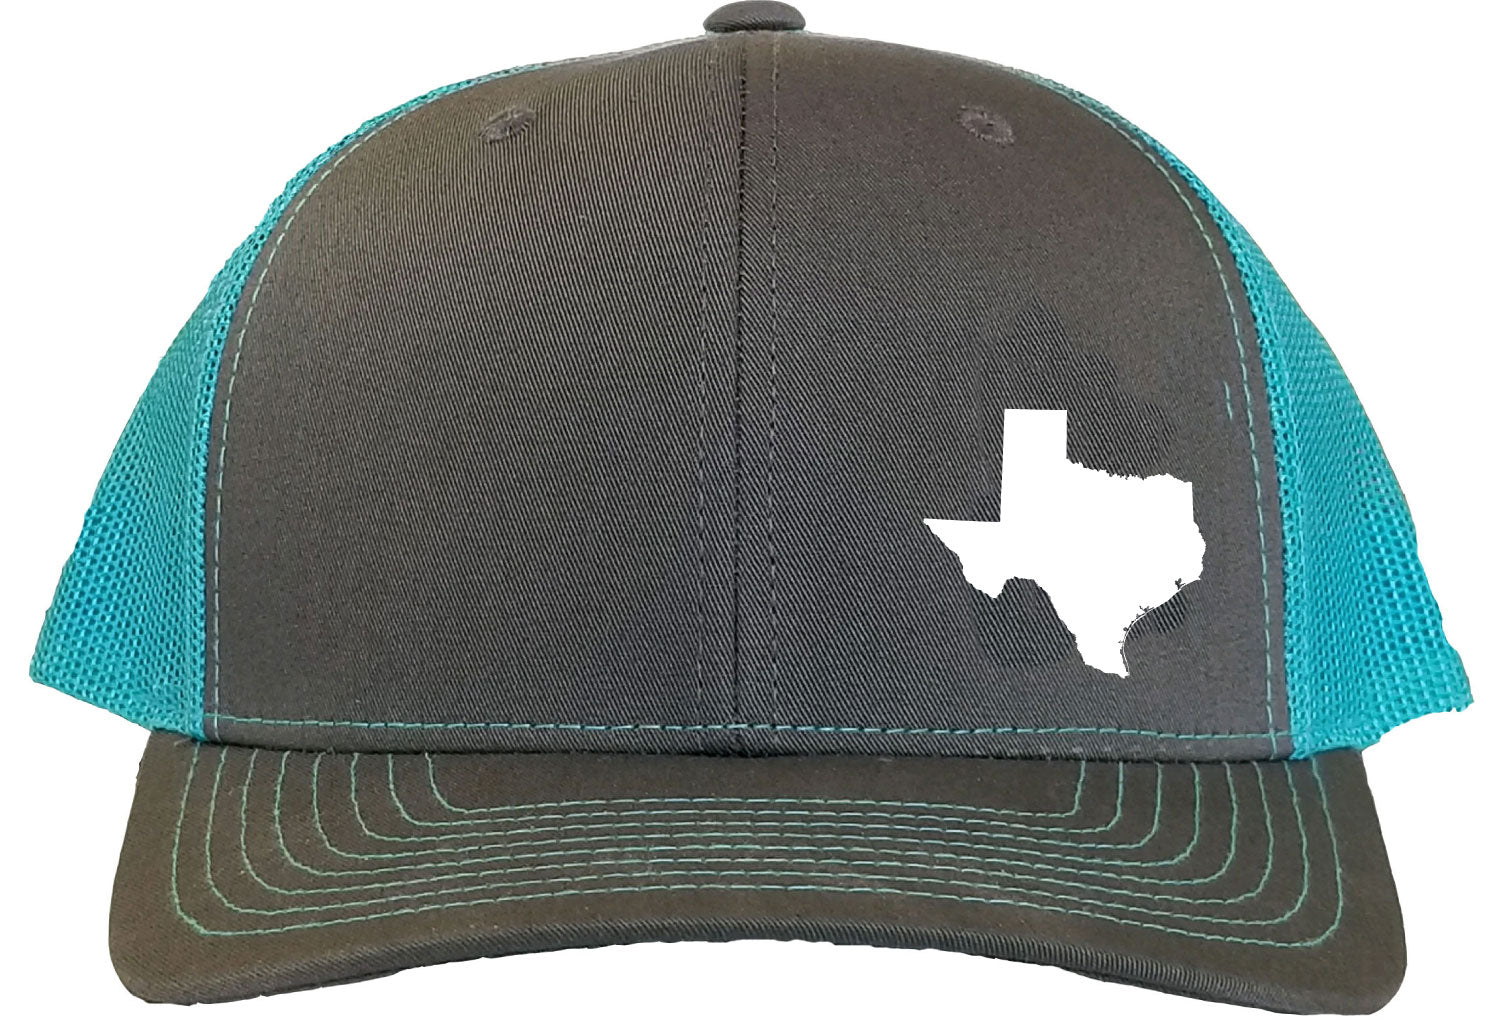 Texas Snapback Hat - Grey/Aqua